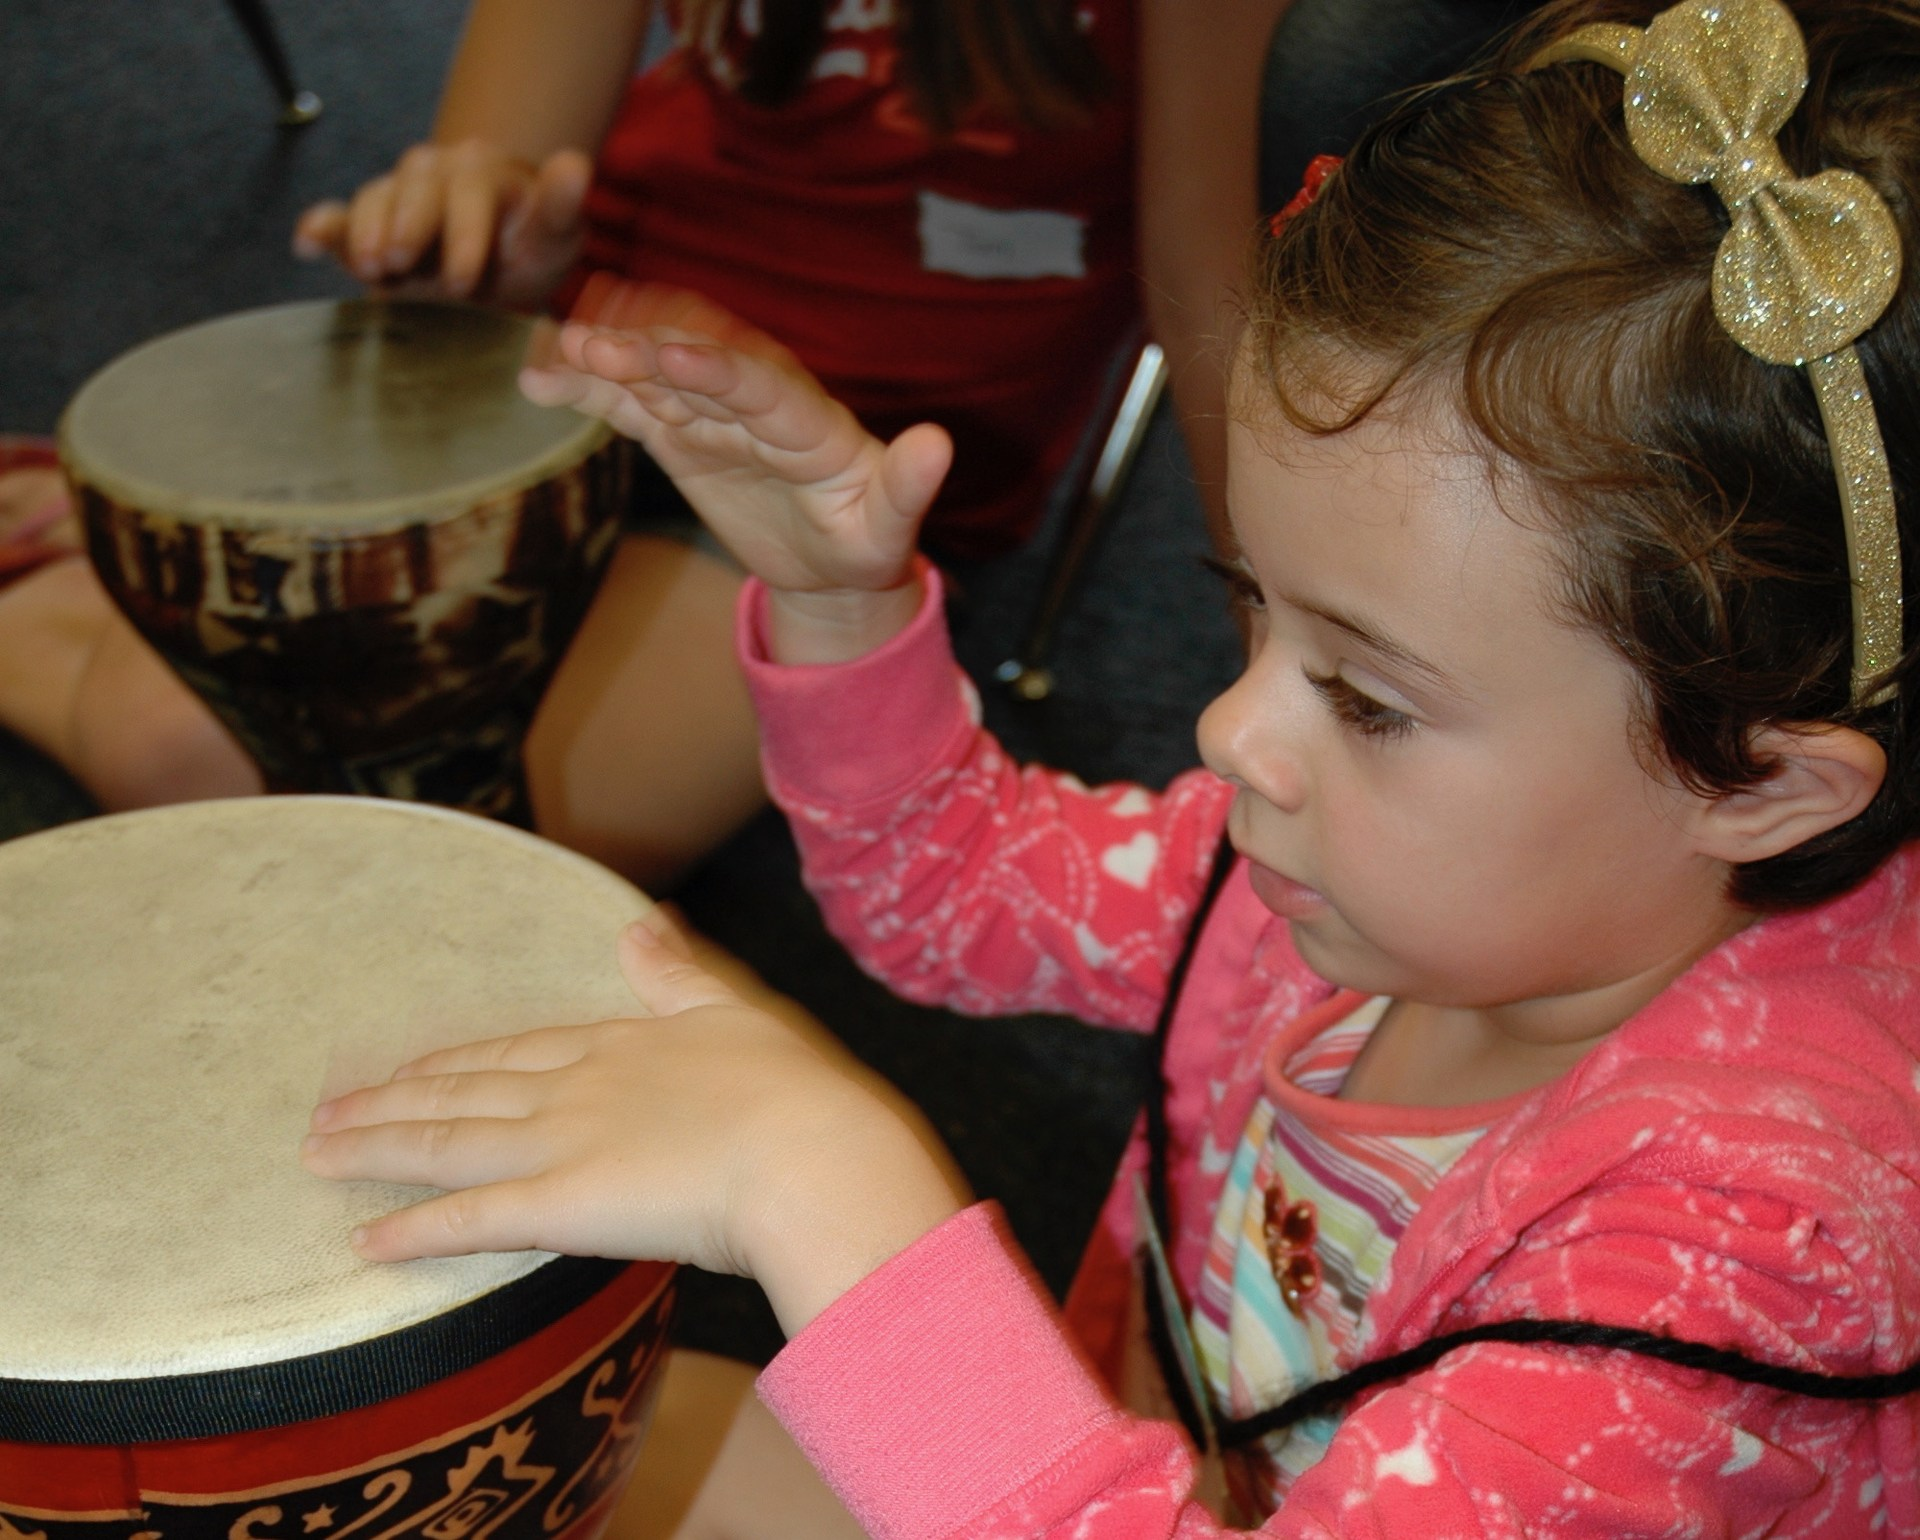 A girl beating on a drum.